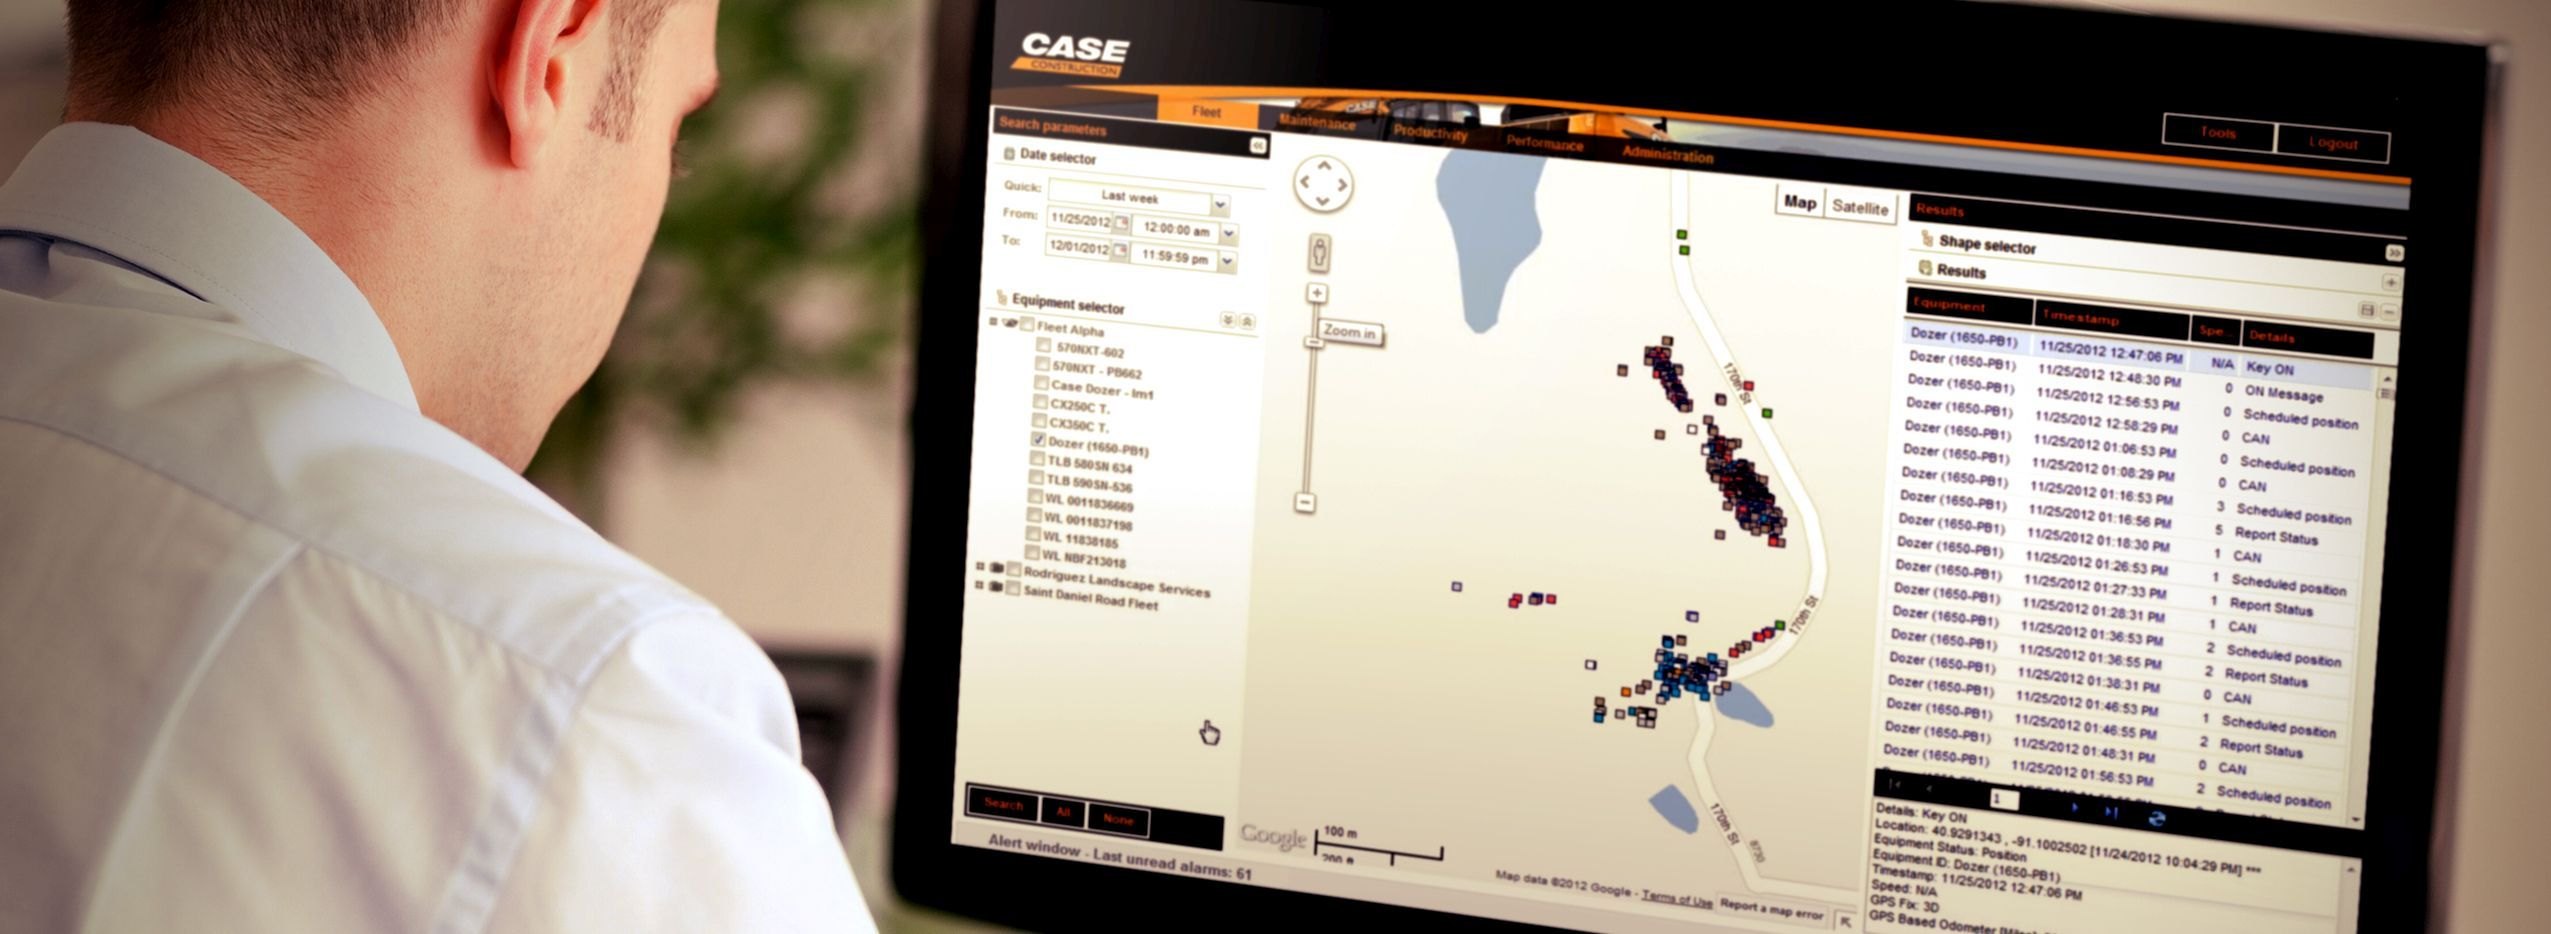 Off-Road Telematics Systems Offer Increased Value to Fleets